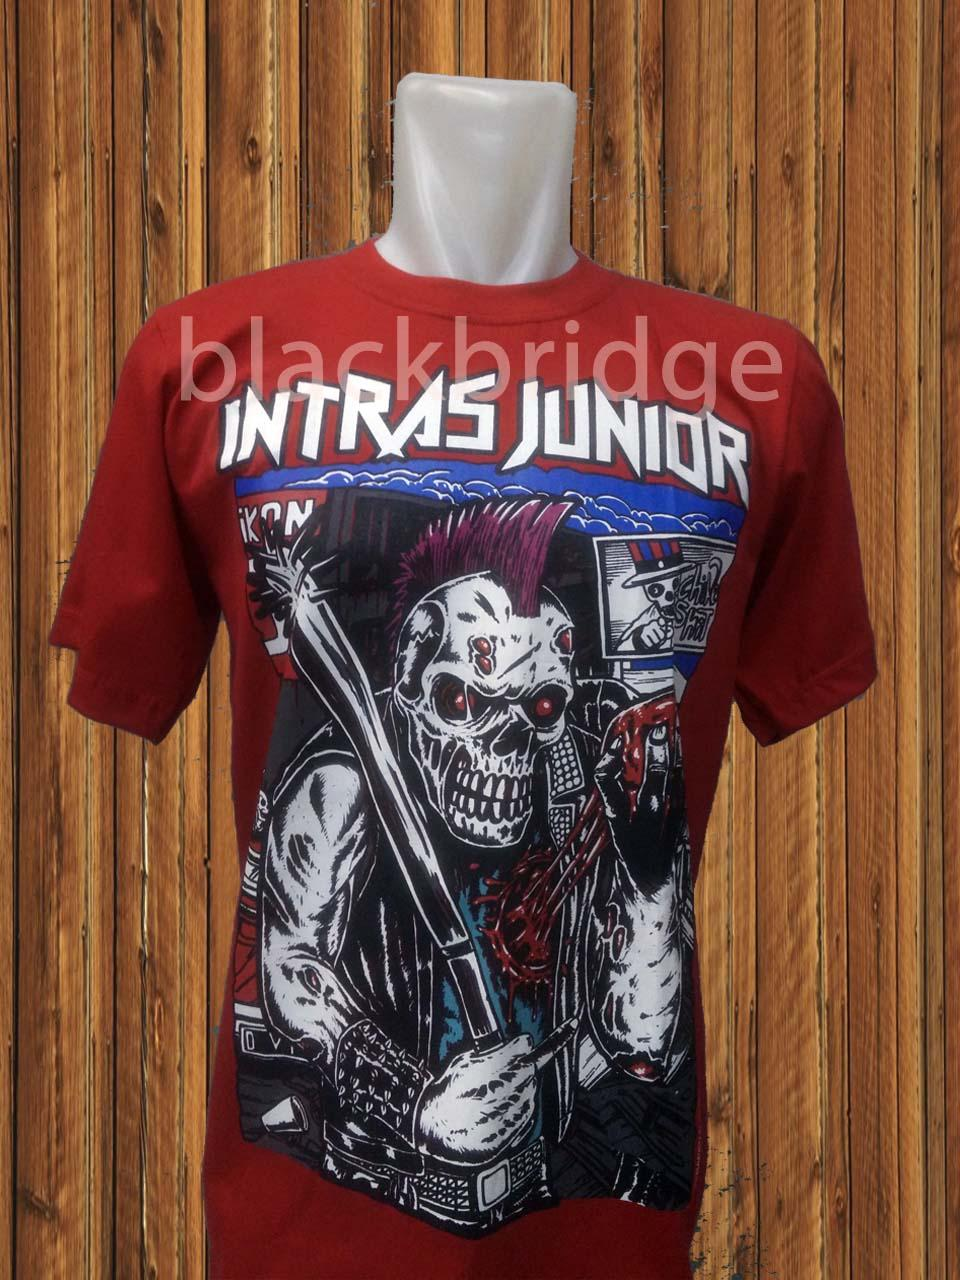 Kaos Pendek - Oblong Metal/Punk Lokal PRAPATAN REBEL (Size M) - INTRAS JUNIOR